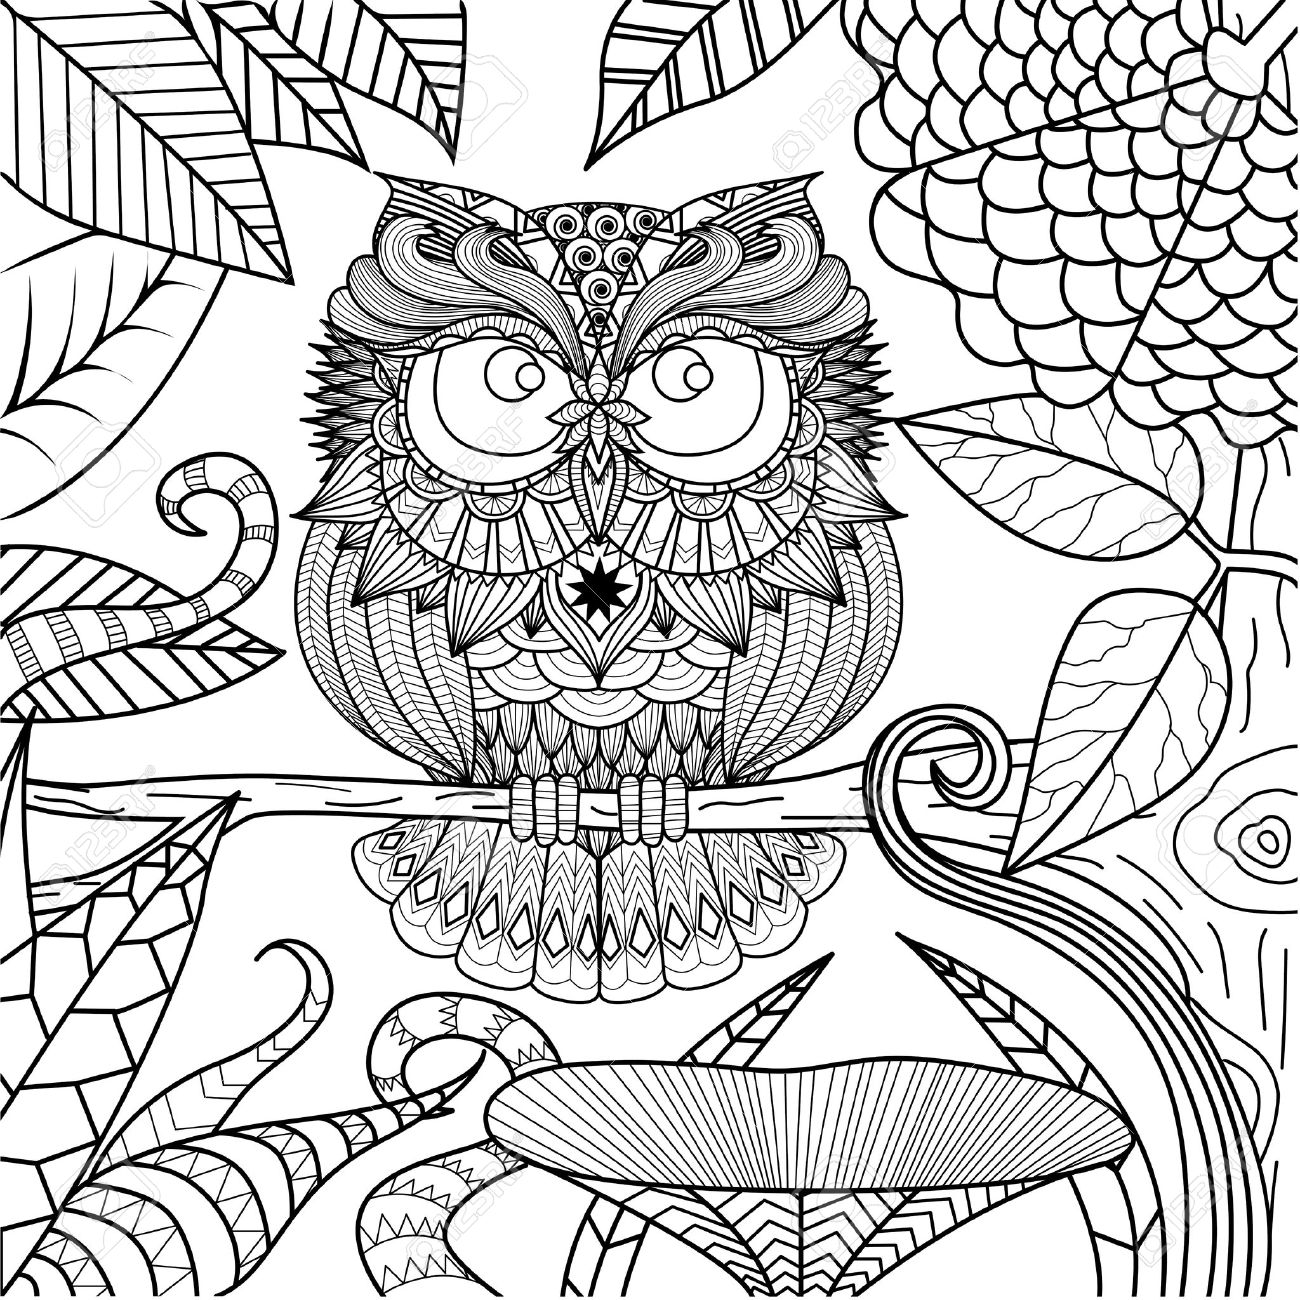 Owl Drawing For Coloring Book. Royalty Free Cliparts, Vectors, And ...